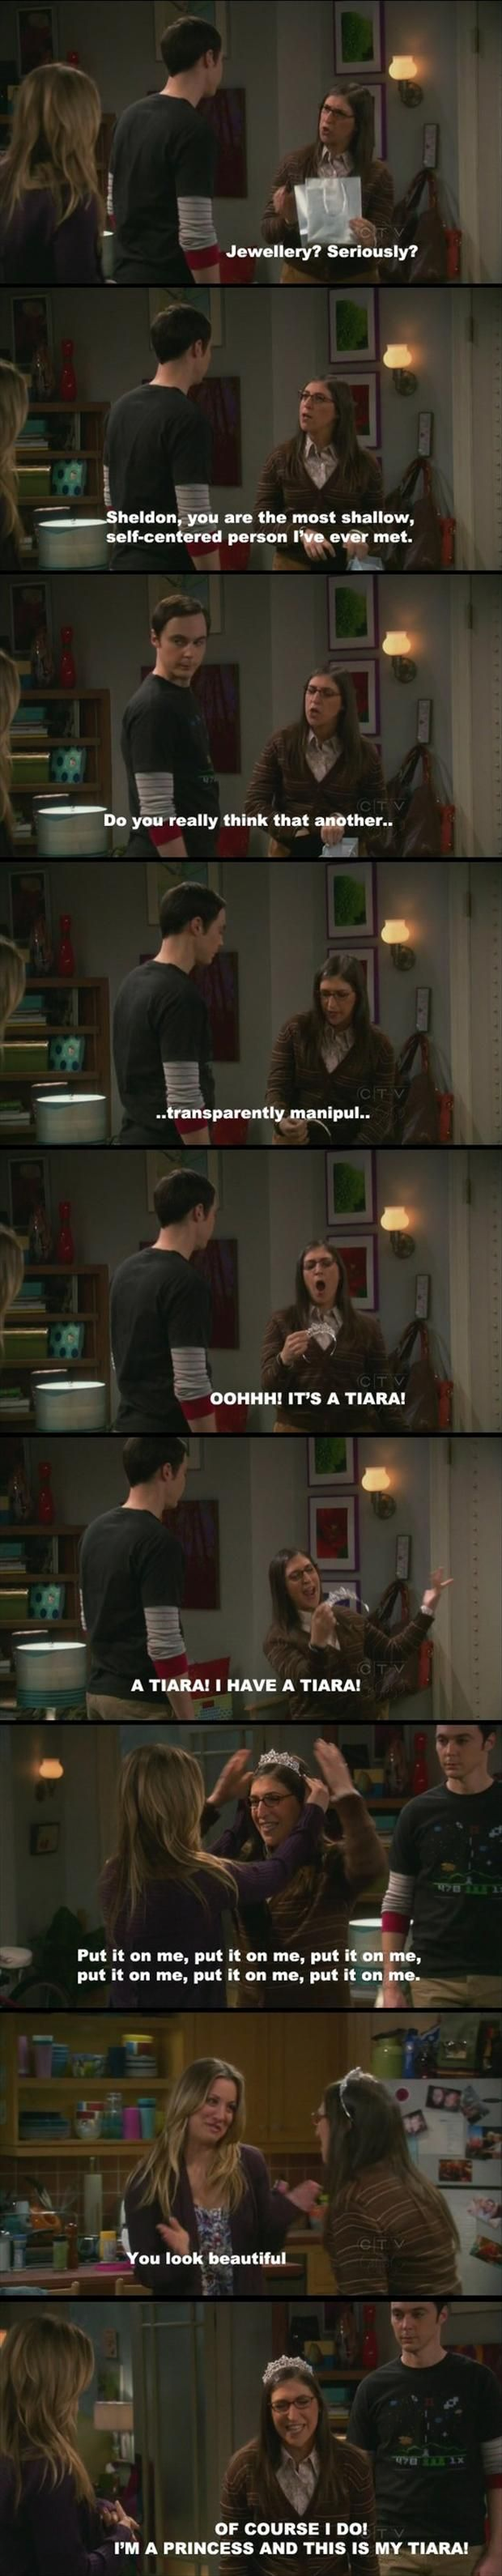 I don't watch the big bang theory but this is awesome. Guilty for having done this once or twice :)